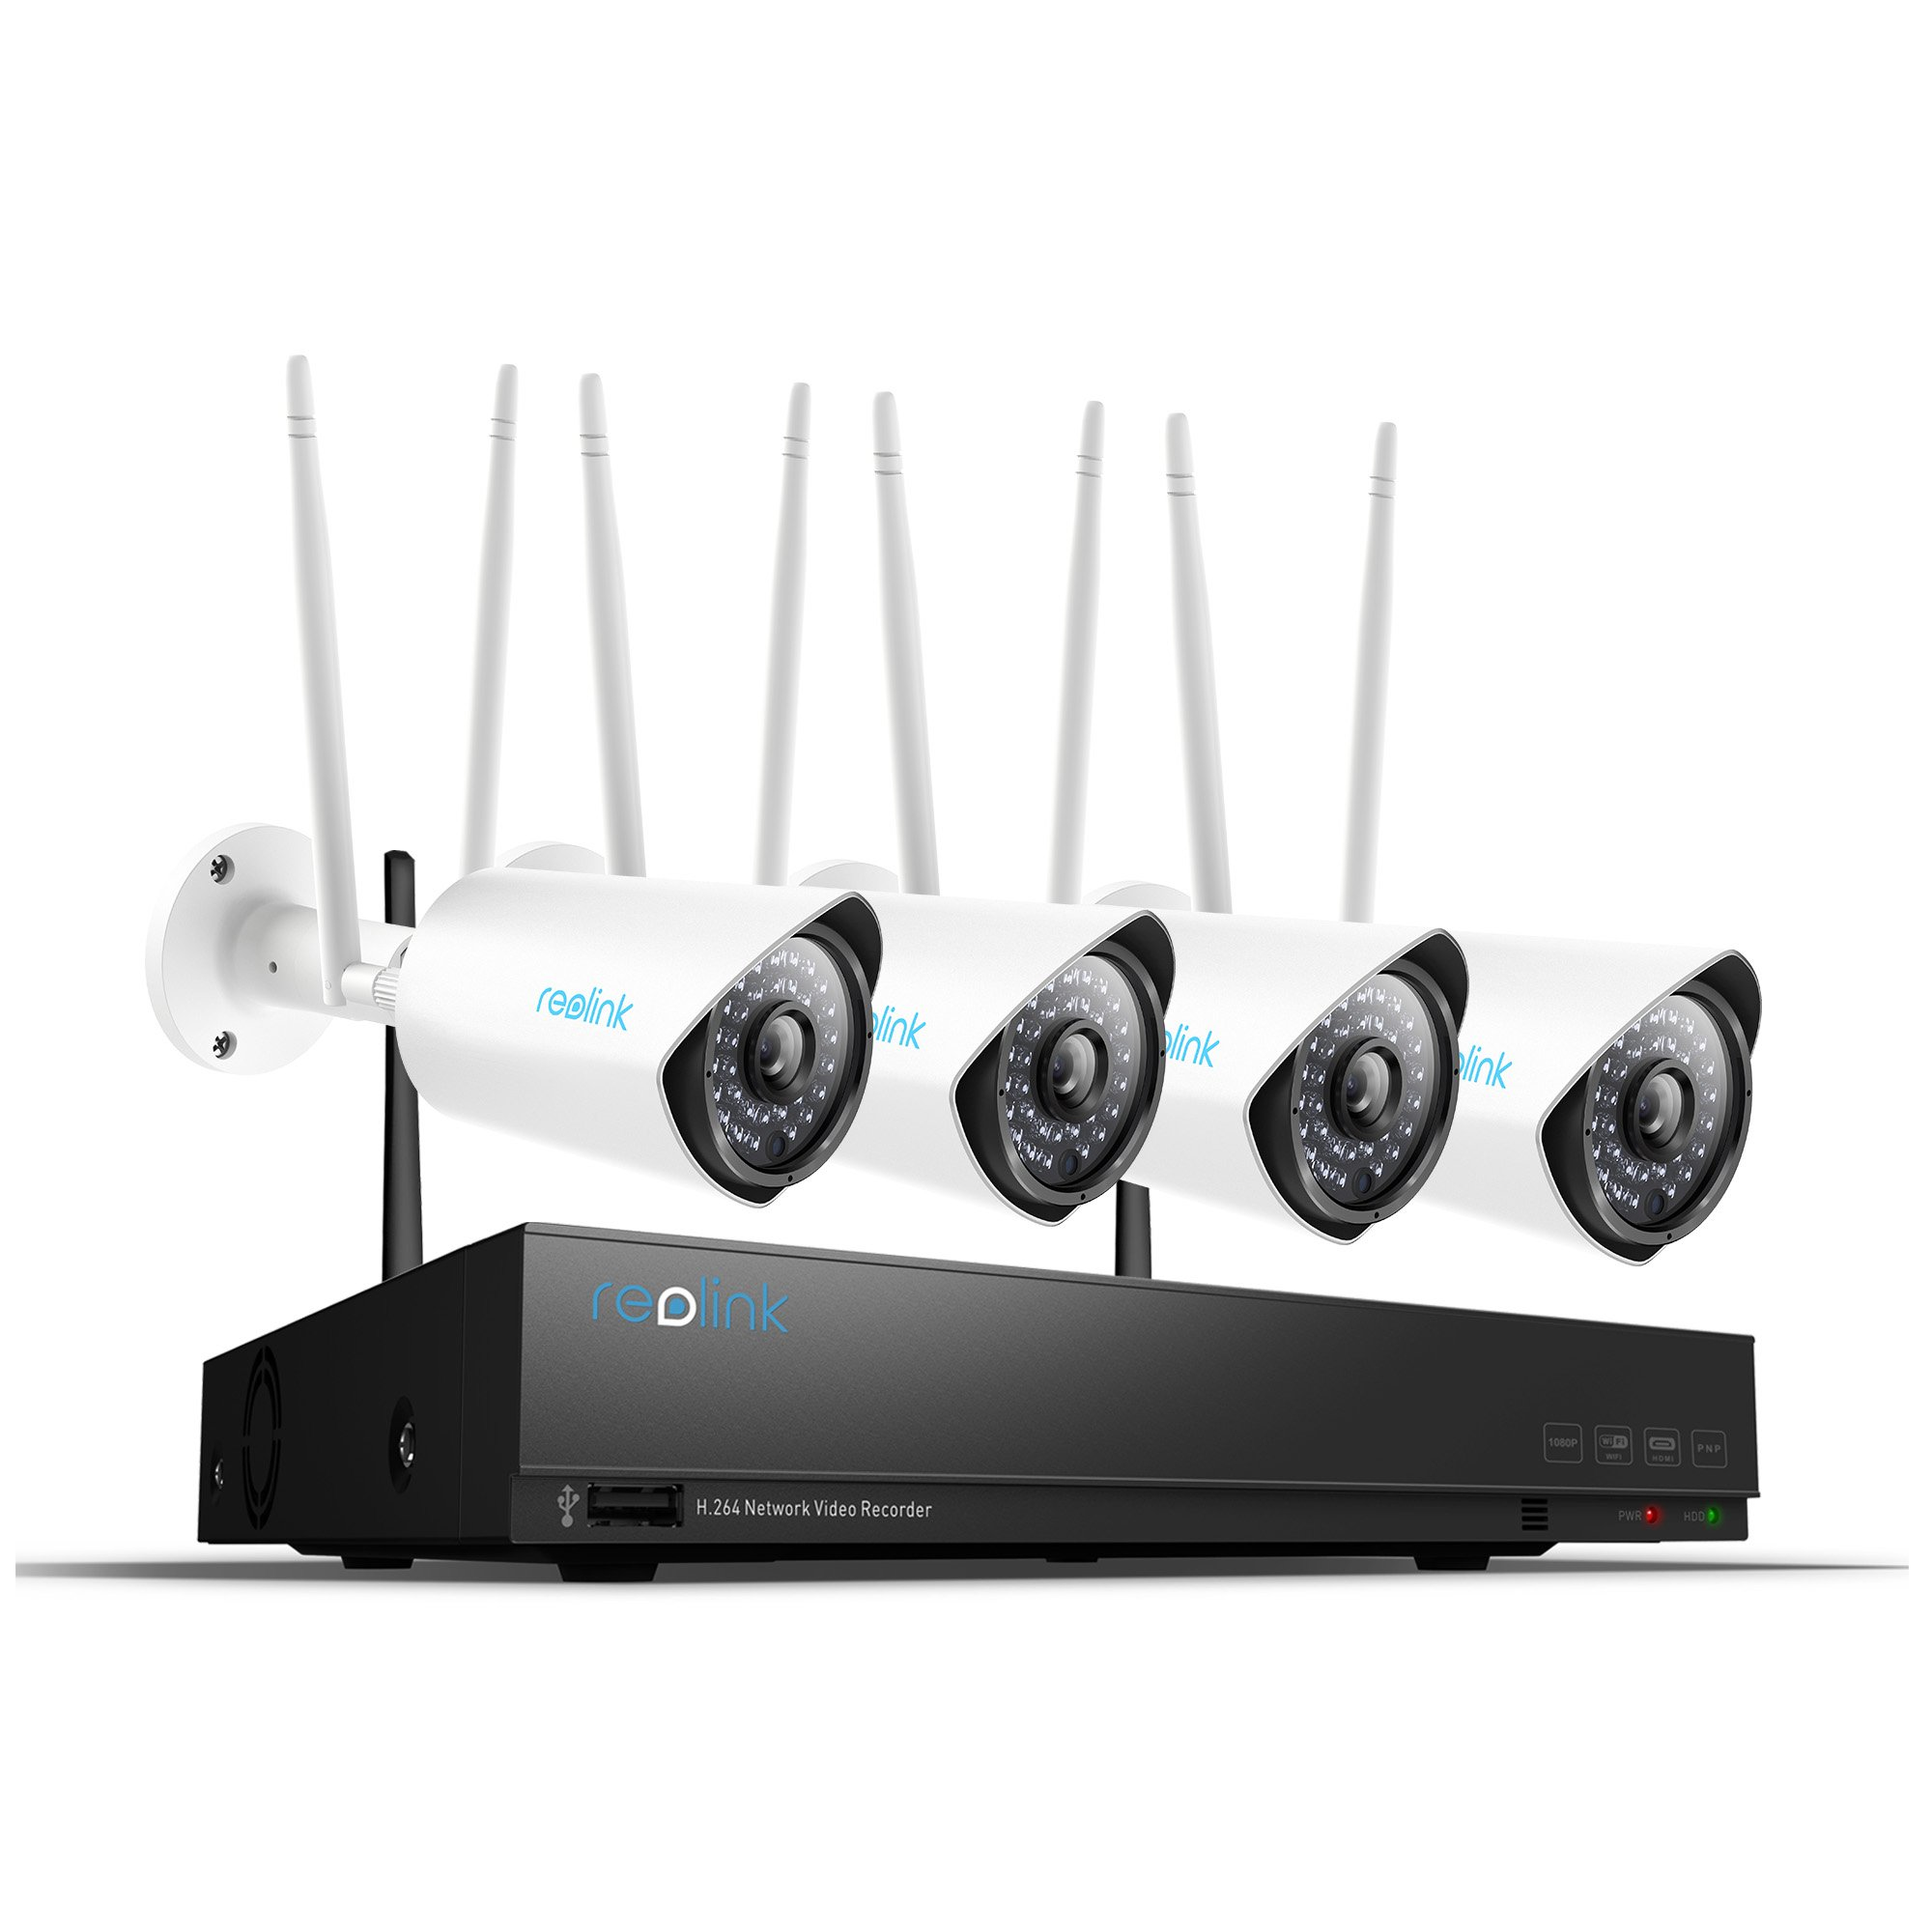 Reolink 1080p Wireless Security Camera System Outdoor HD 4 Channel WiFi NVR Hard Drive Home Business Monitor RLK4-210WB4